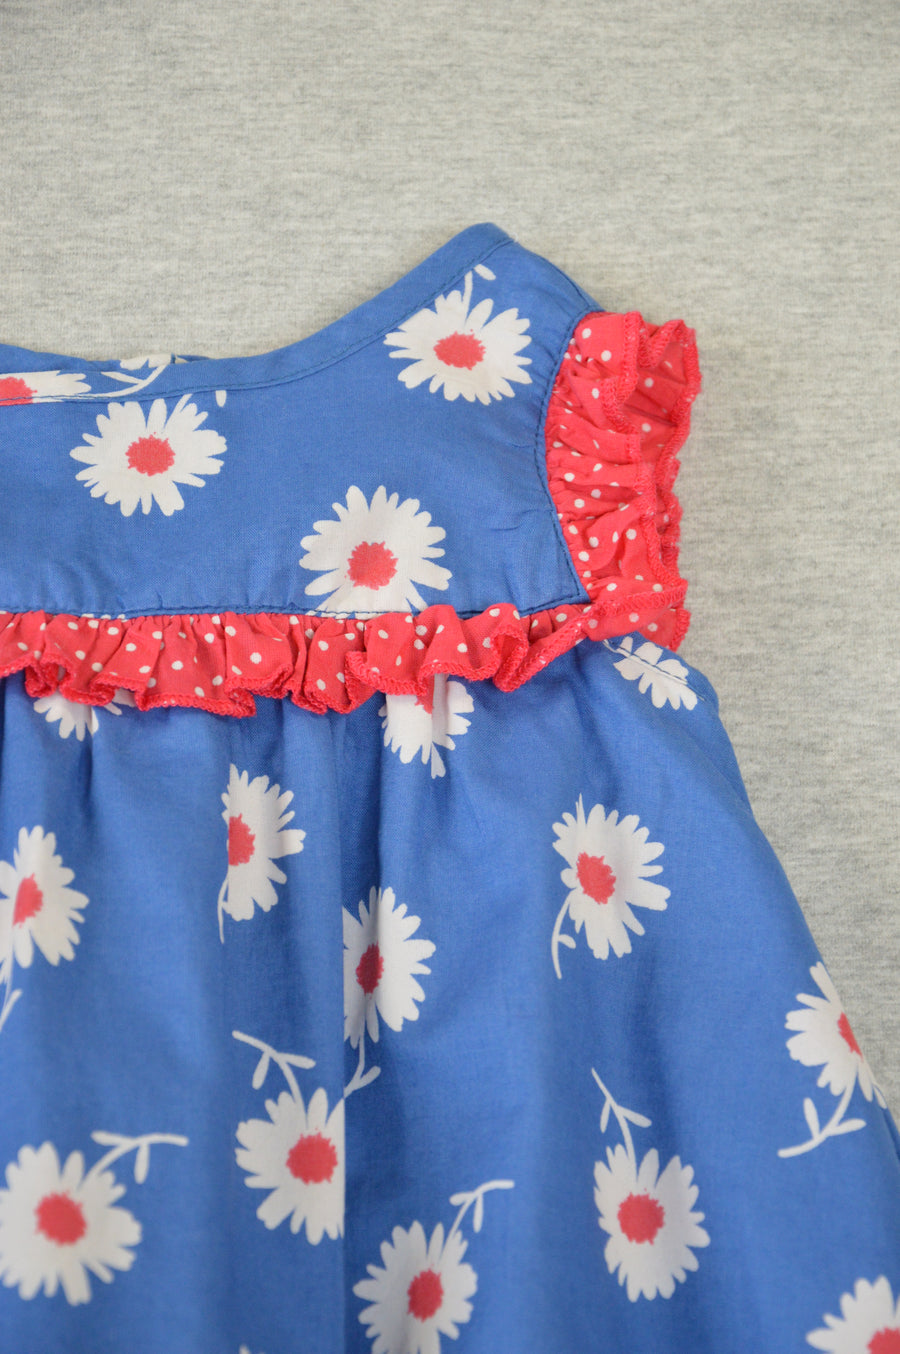 Tiny Little Wonders - nearly new - blue floral sundress, size 6-12m